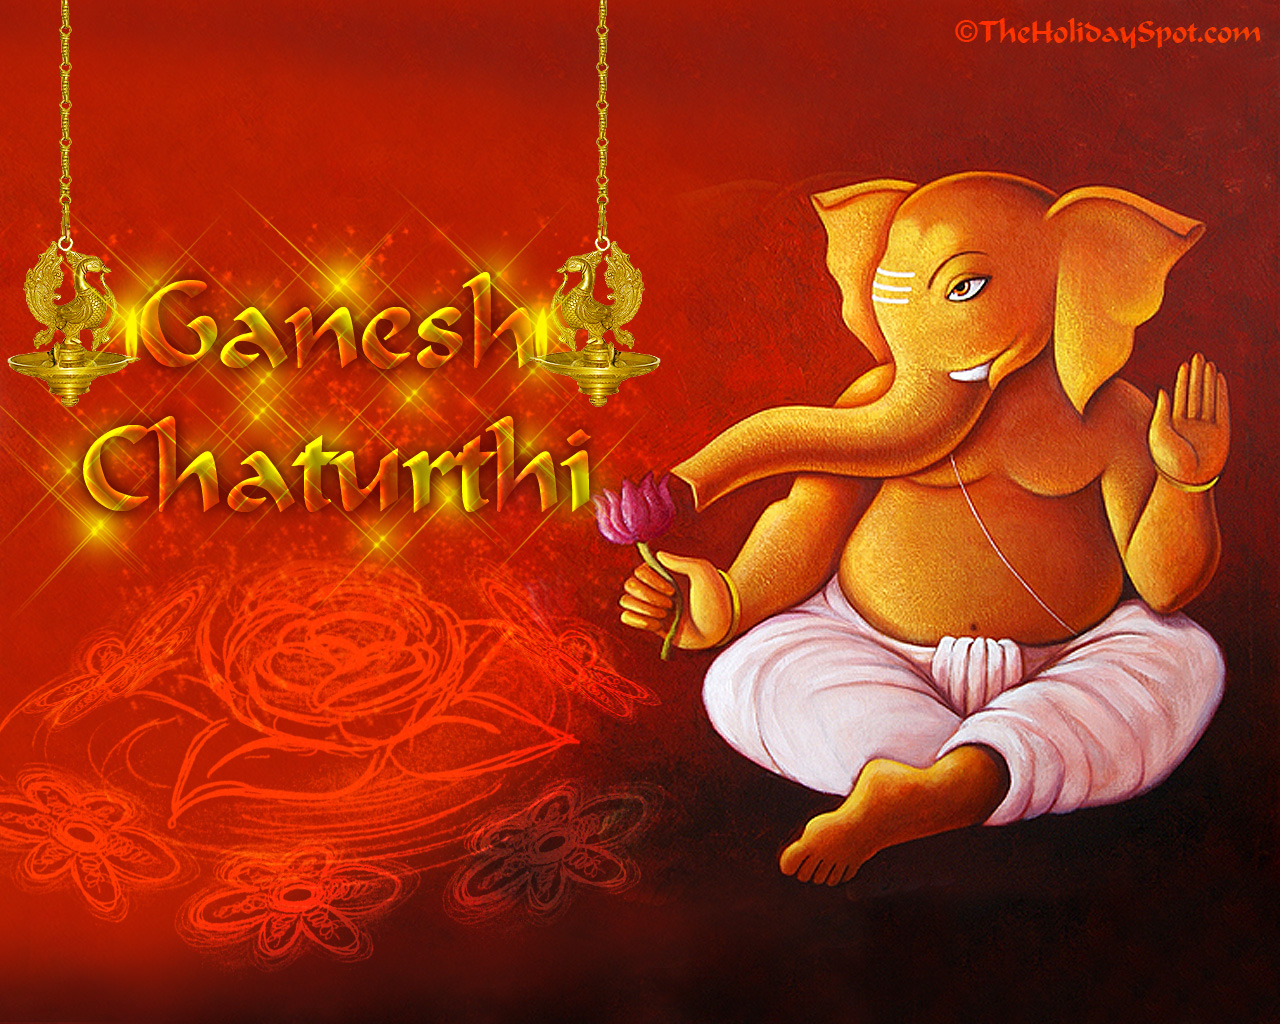 Ganesh Chaturthi Wallpaper for fb Share